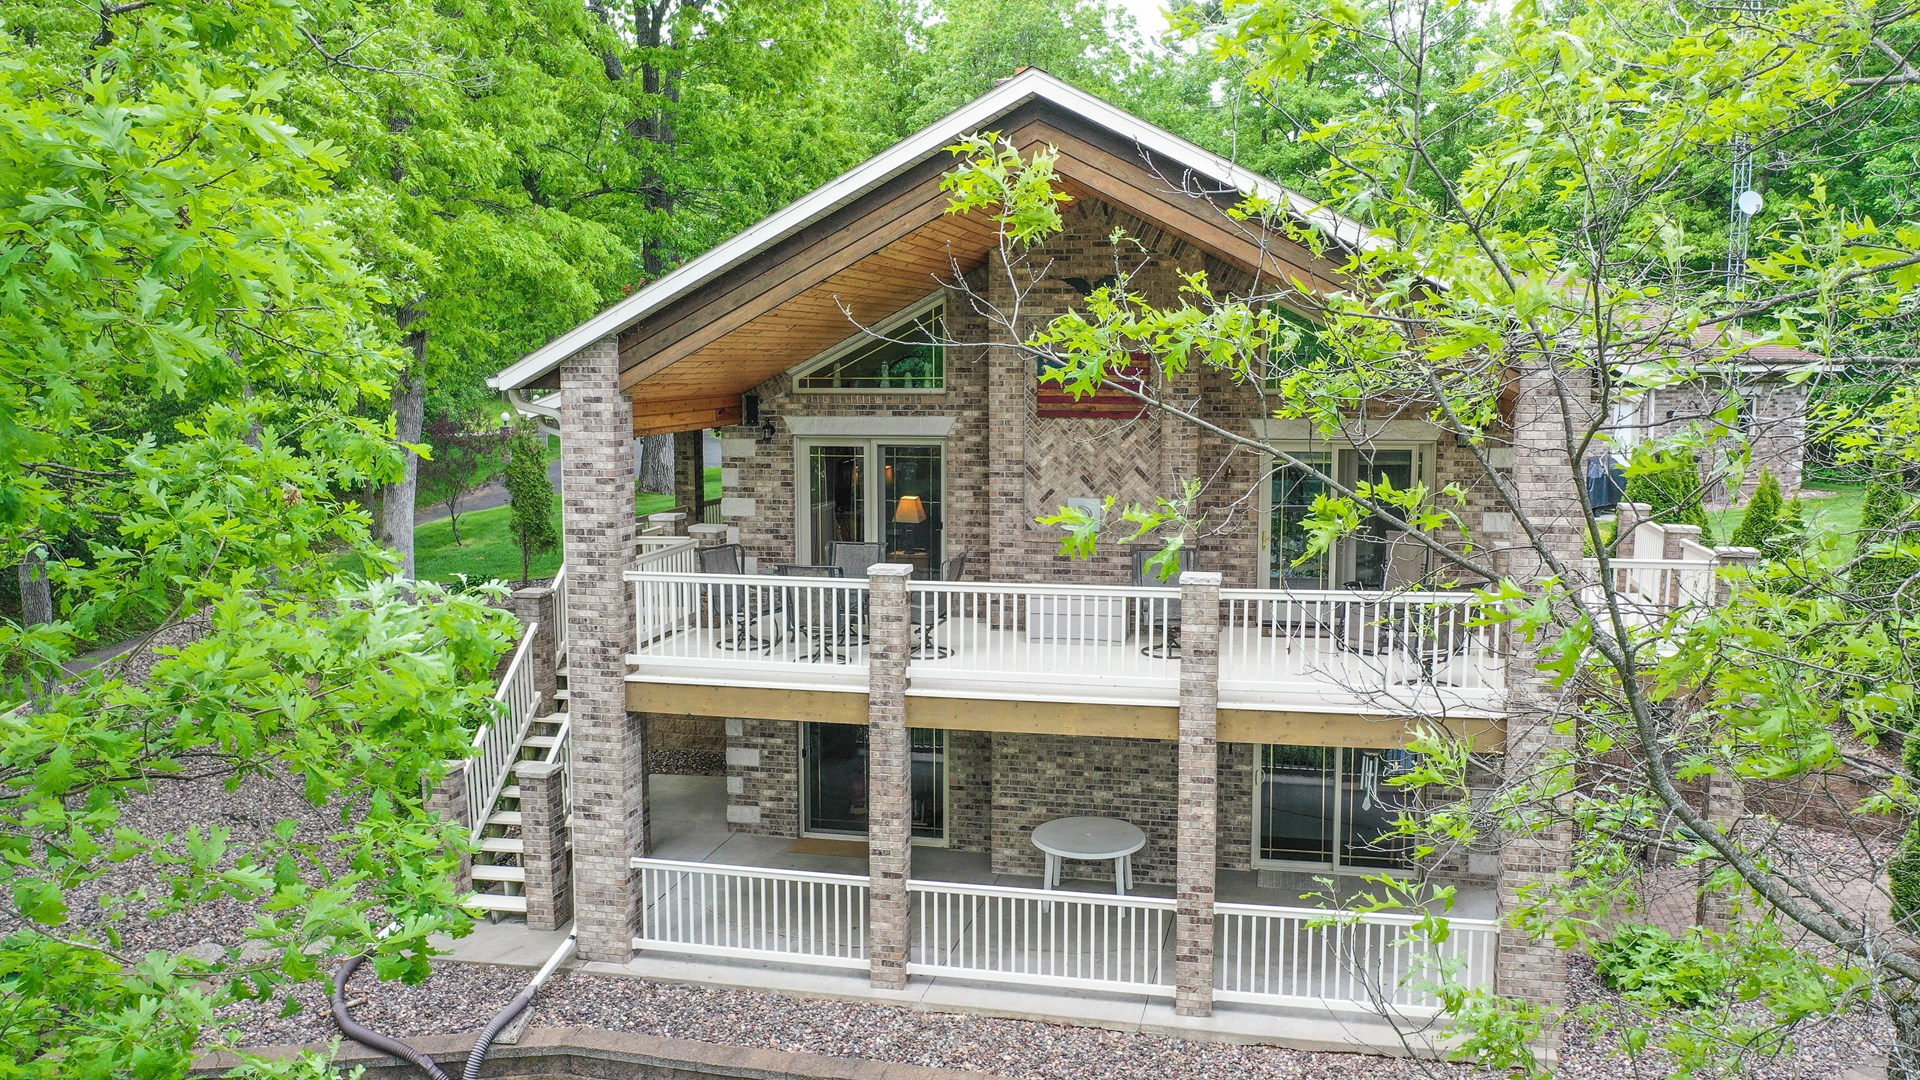 Lake Emily Home for Sale Amherst Junction, WI